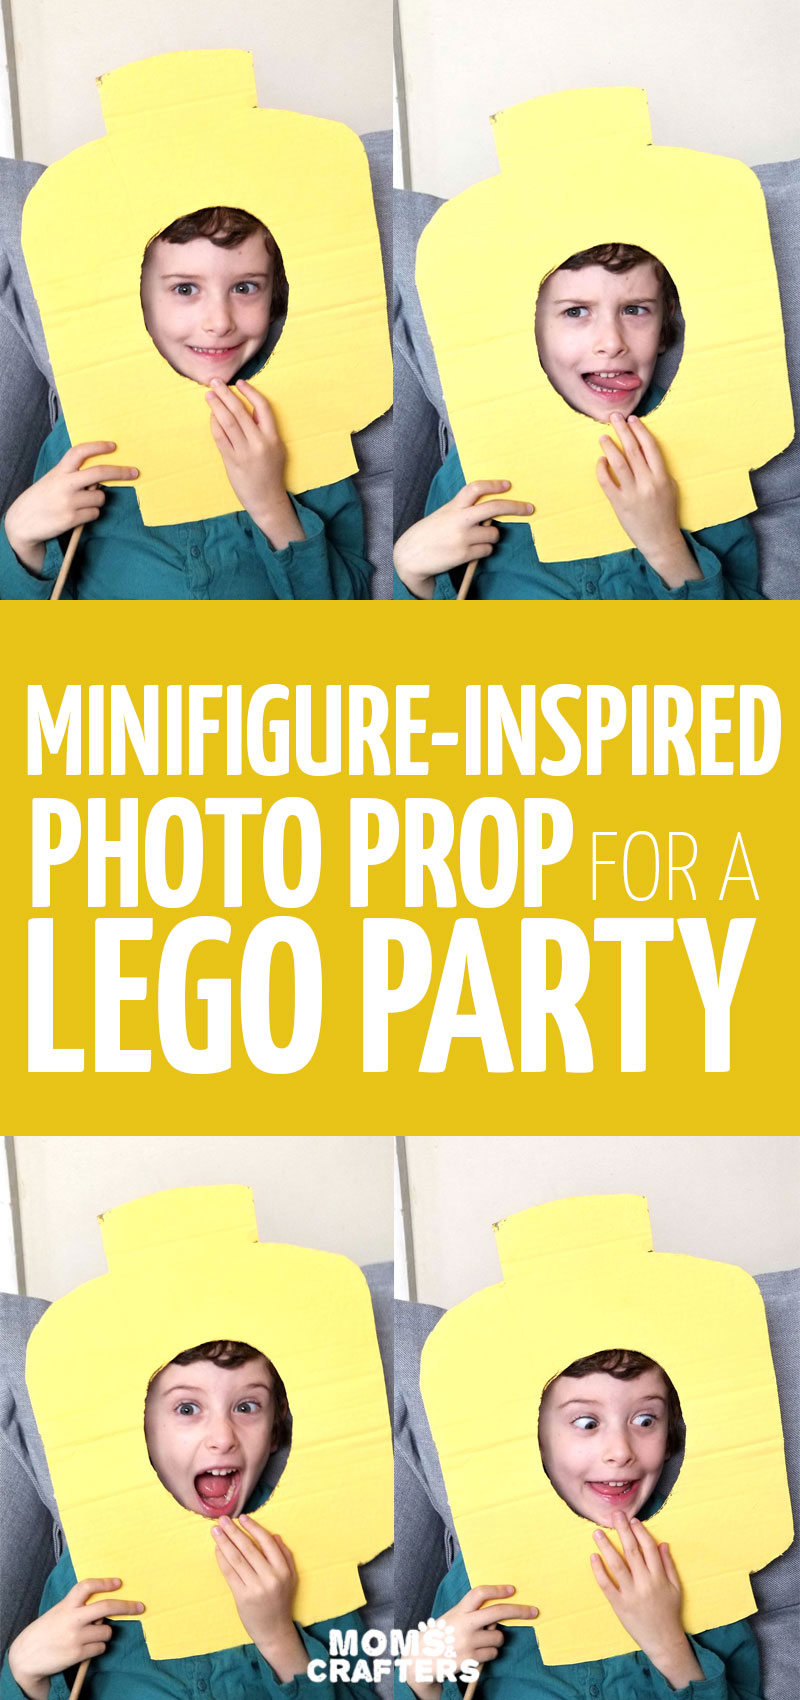 Make LEGO photo props for your next LEGO themed birthday party! This fun minifigure-inspired photo booth idea is made from upcycled cardboard boxes and is super easy to craft.